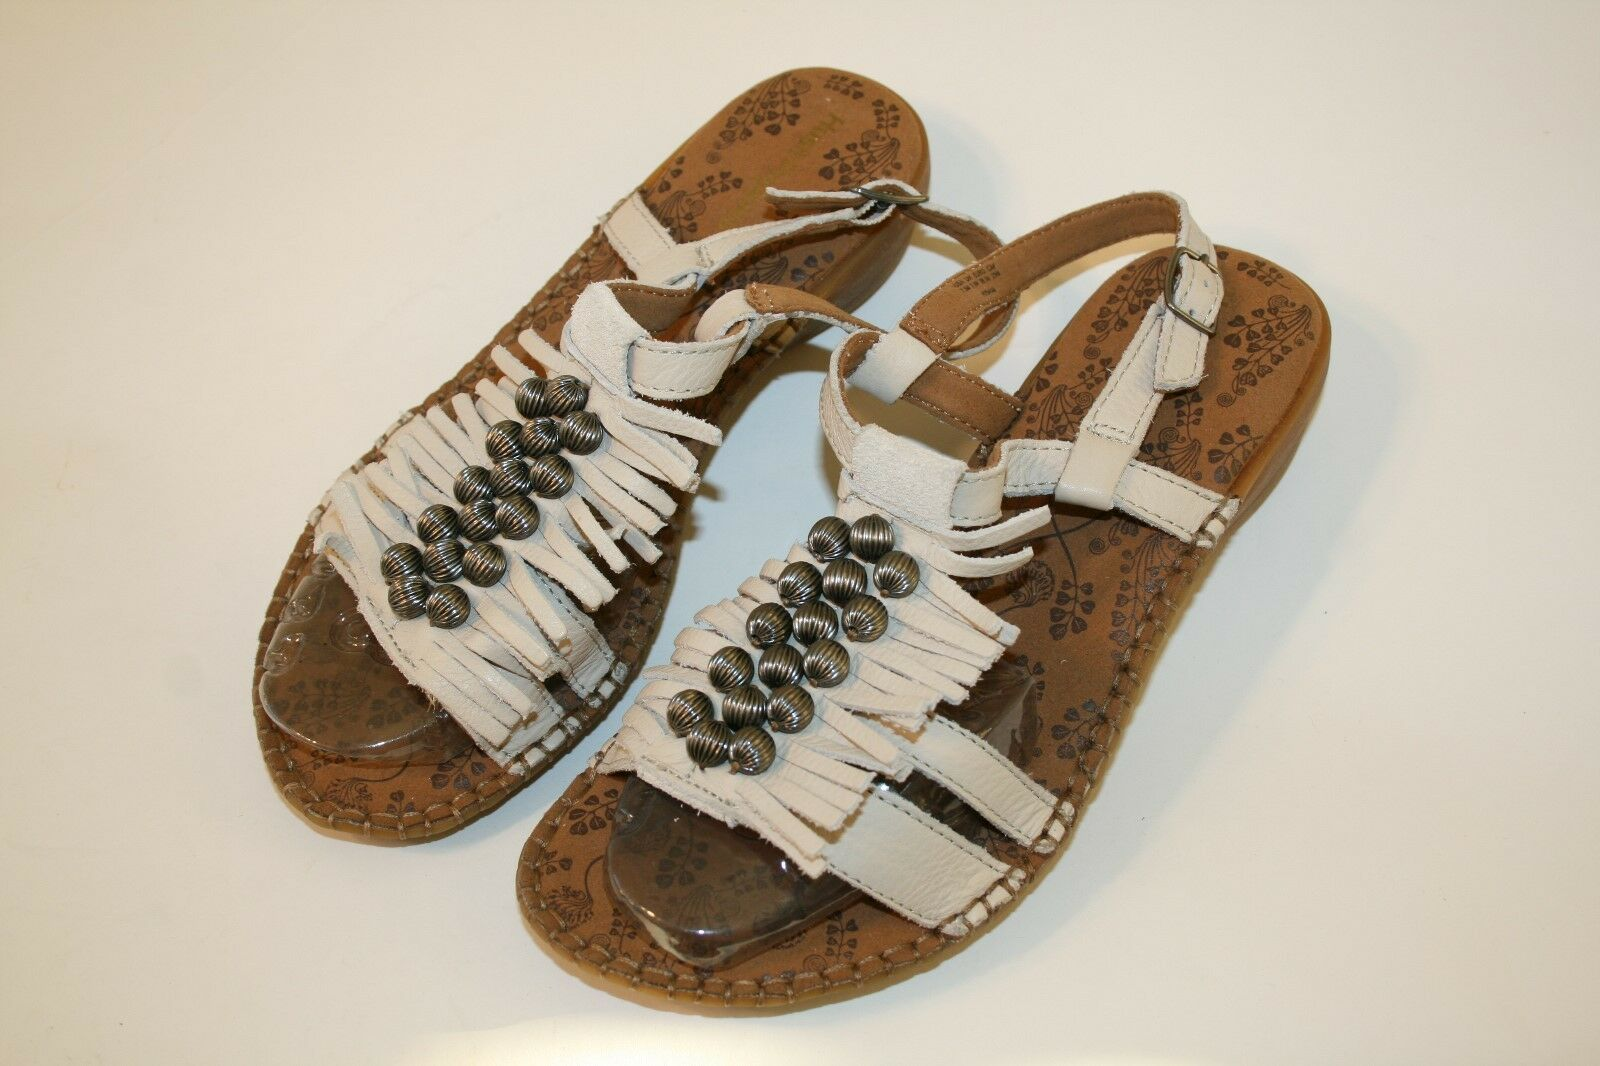 Hush Puppies Beige Sandals Bohemian Style Shoes Leather Fringe Womens Sandals Beige Size 7.5 5e4c52